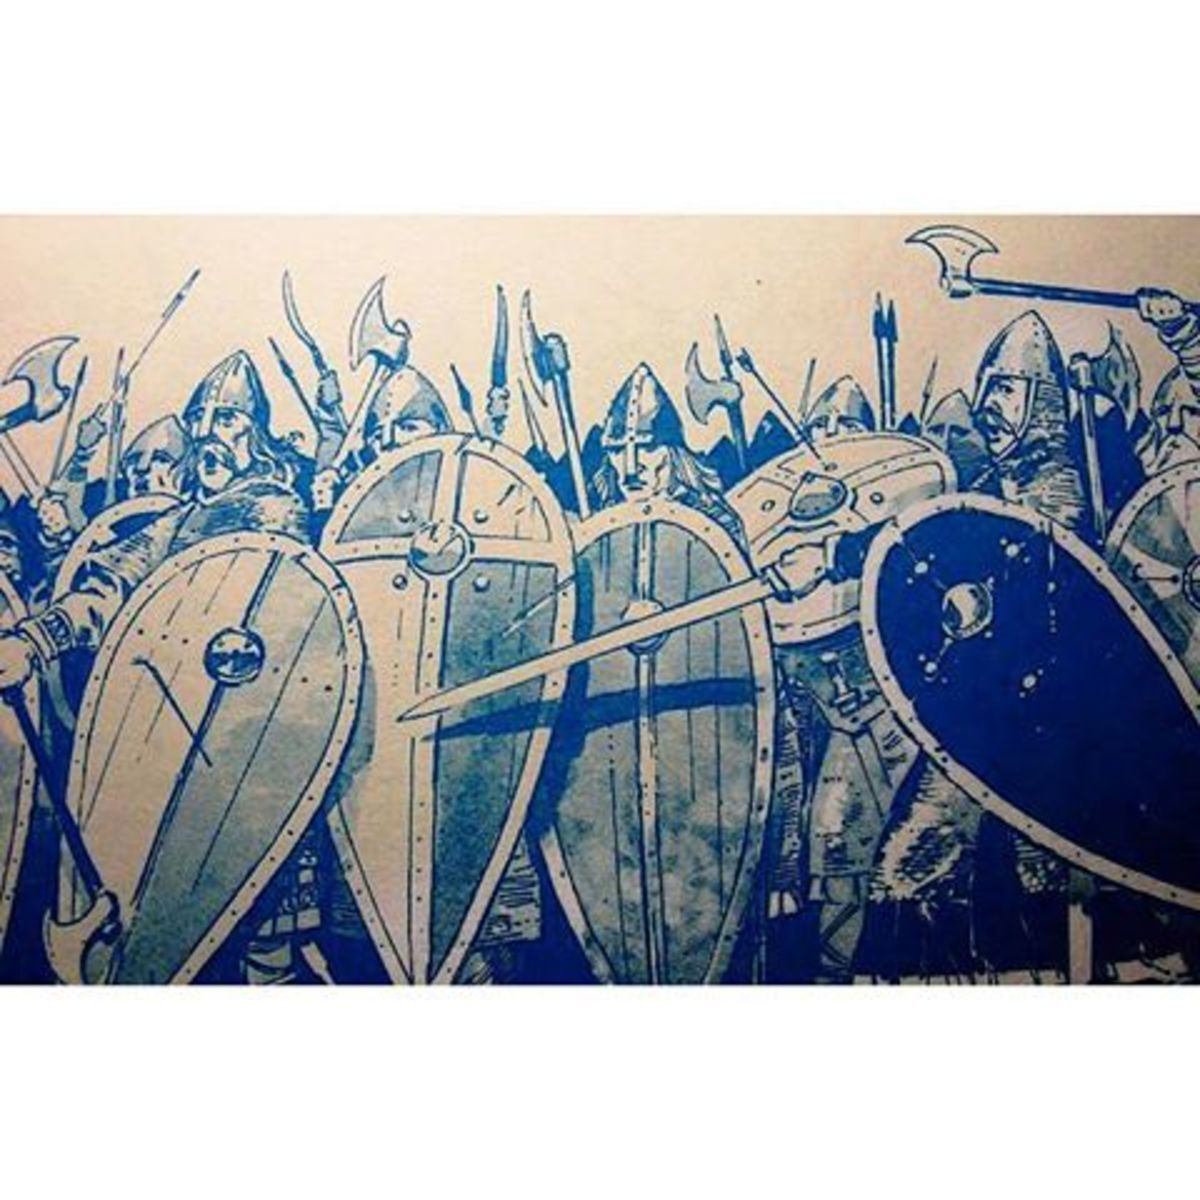 Earl Gyrth rallies his men on Caldec Hill, Saturday October 14th, 1066